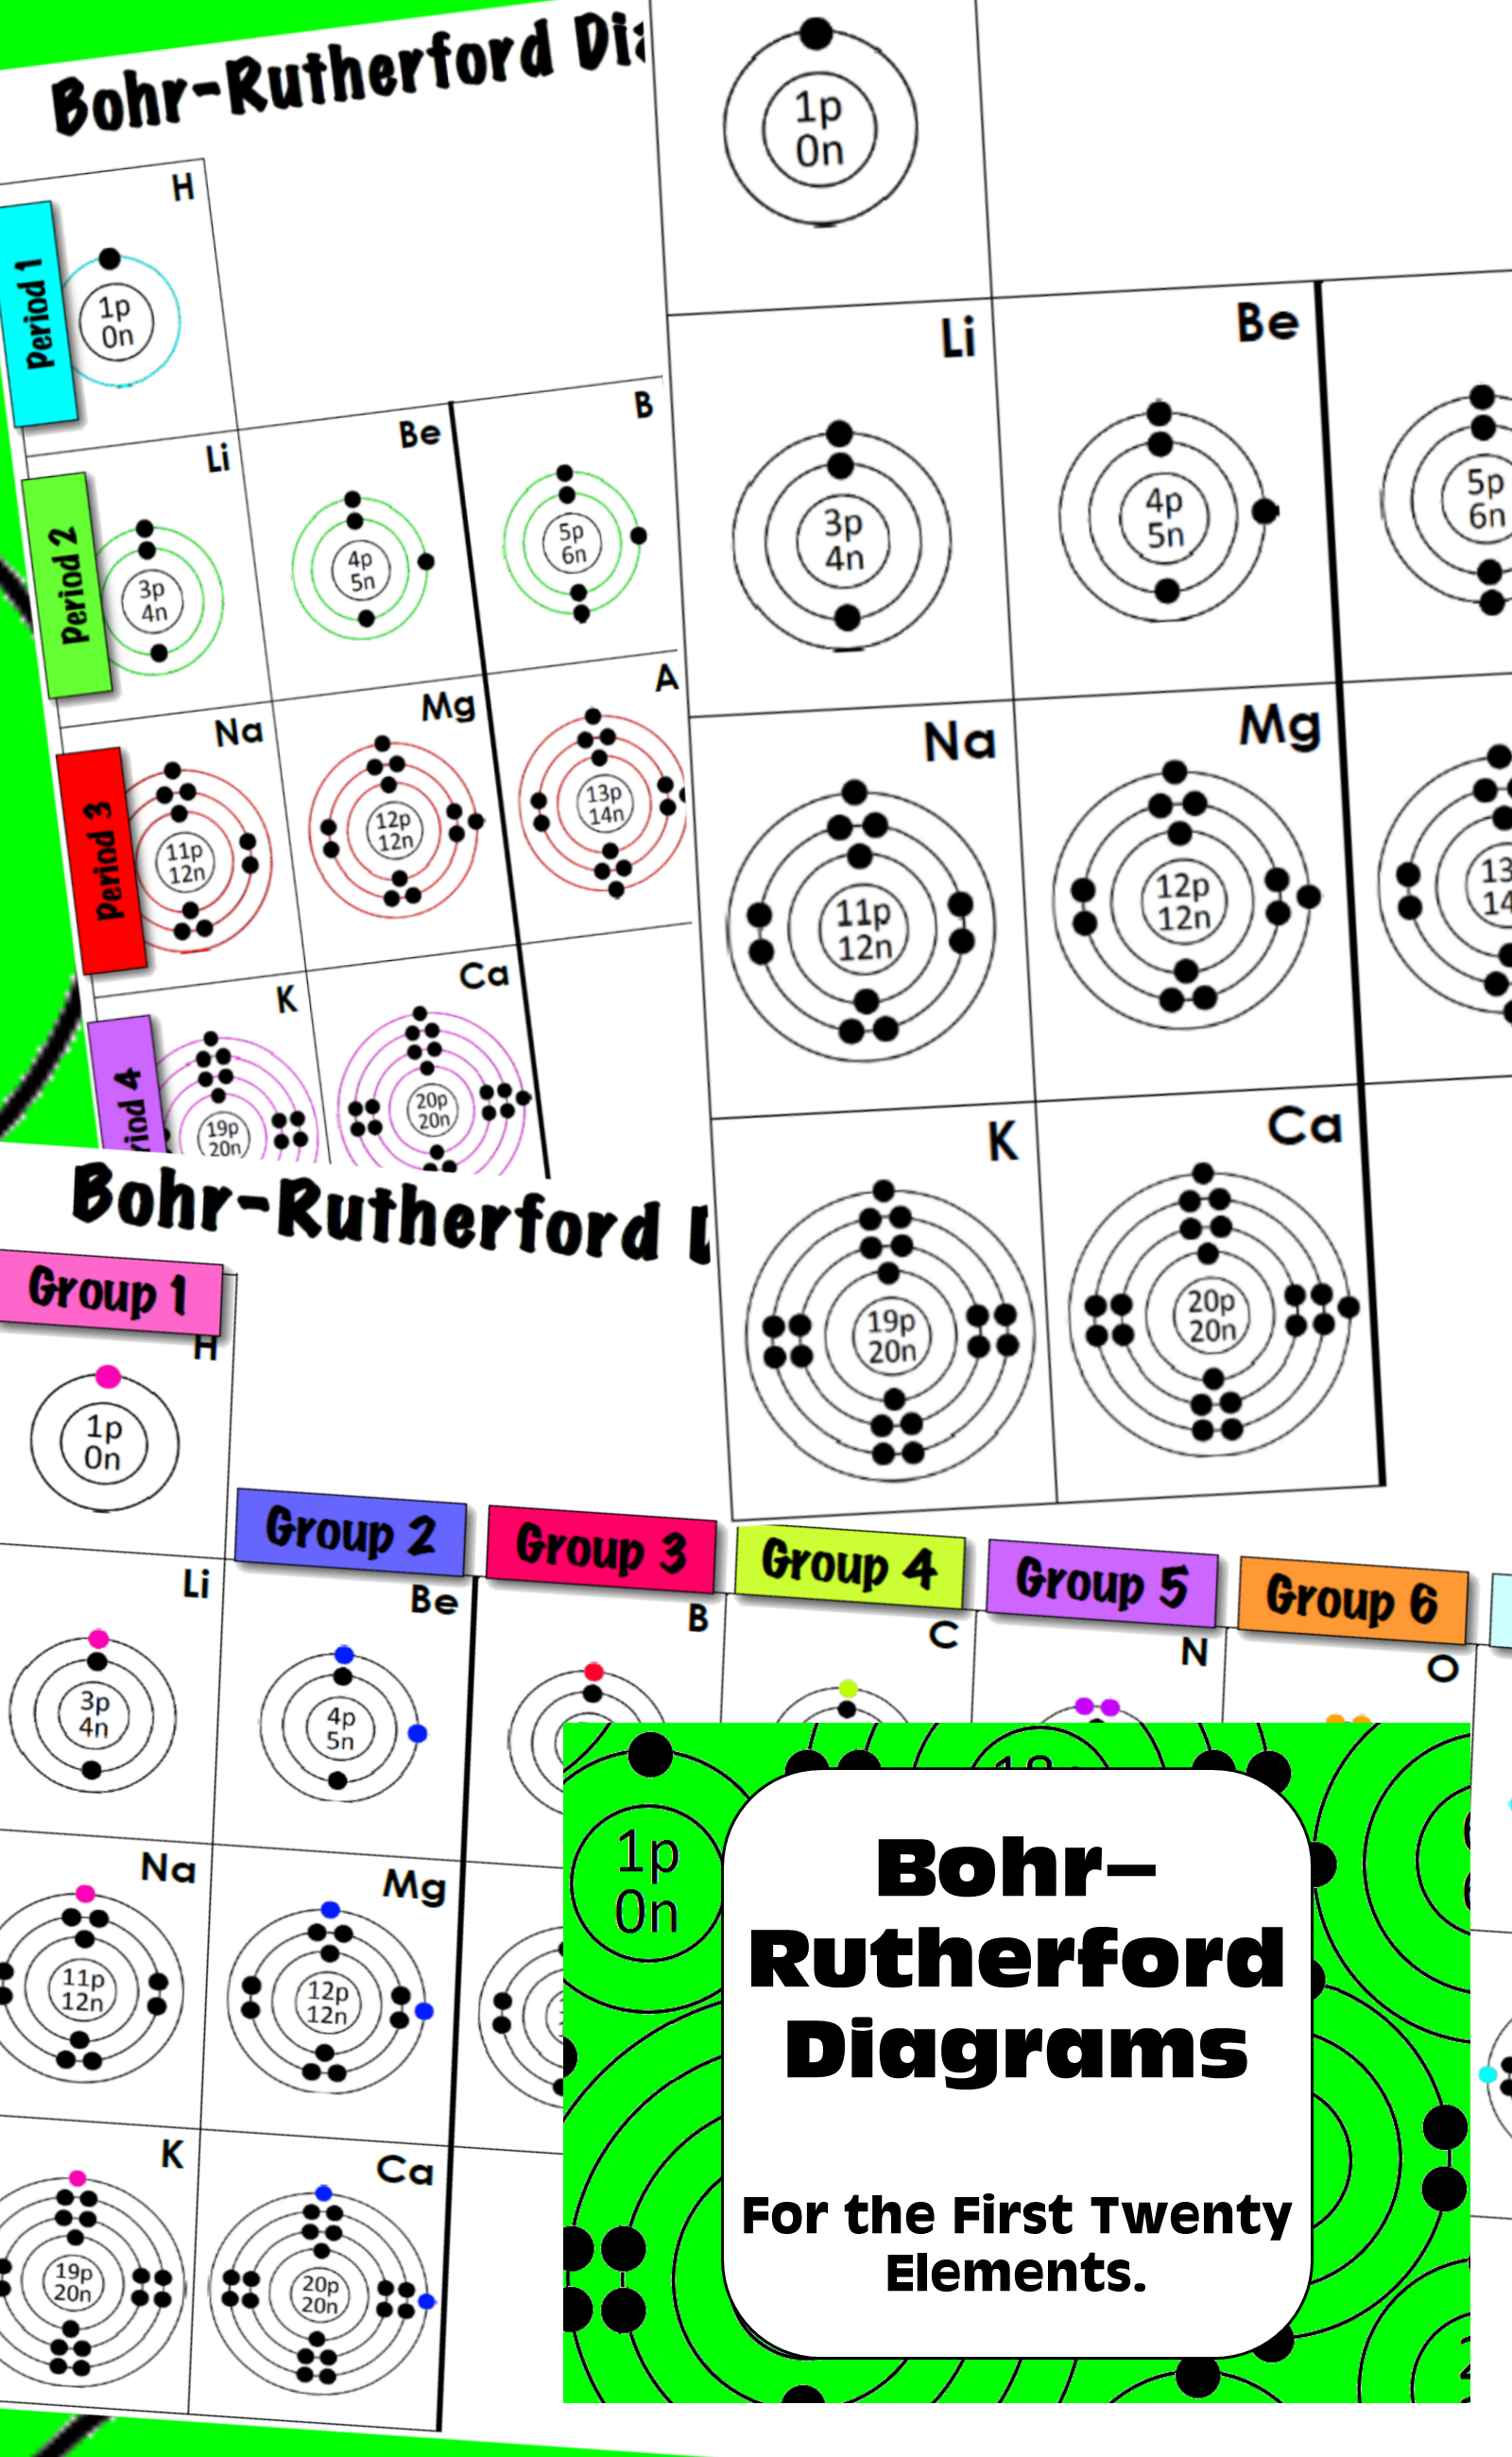 Bohr Models Bohr Rutherford Diagrams For The First Twenty